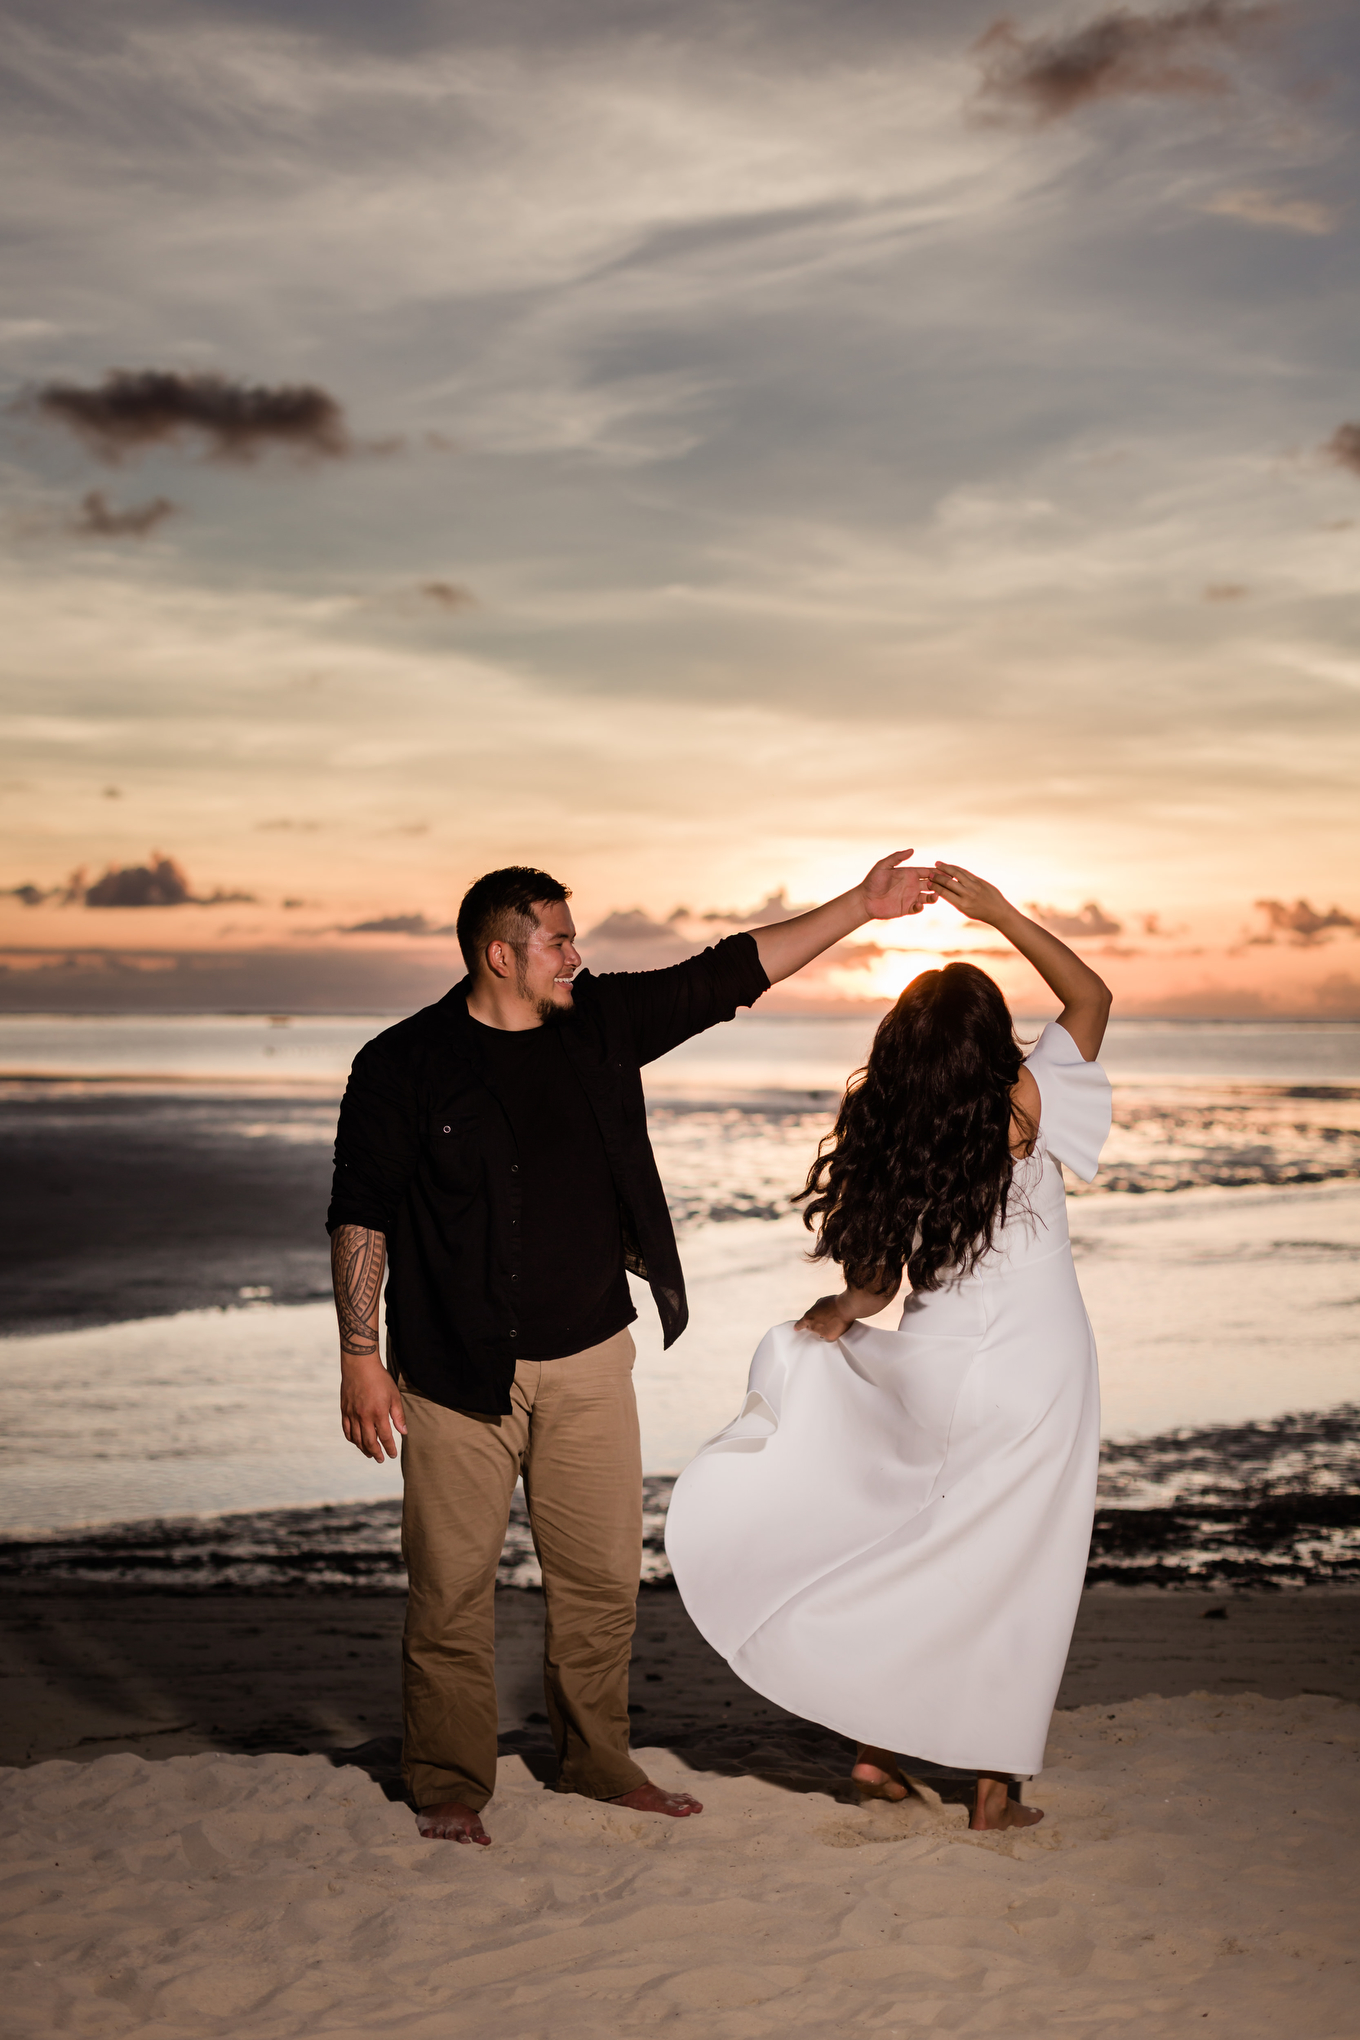 21PIXELS_Guam_Engagement_Photographer248.JPG